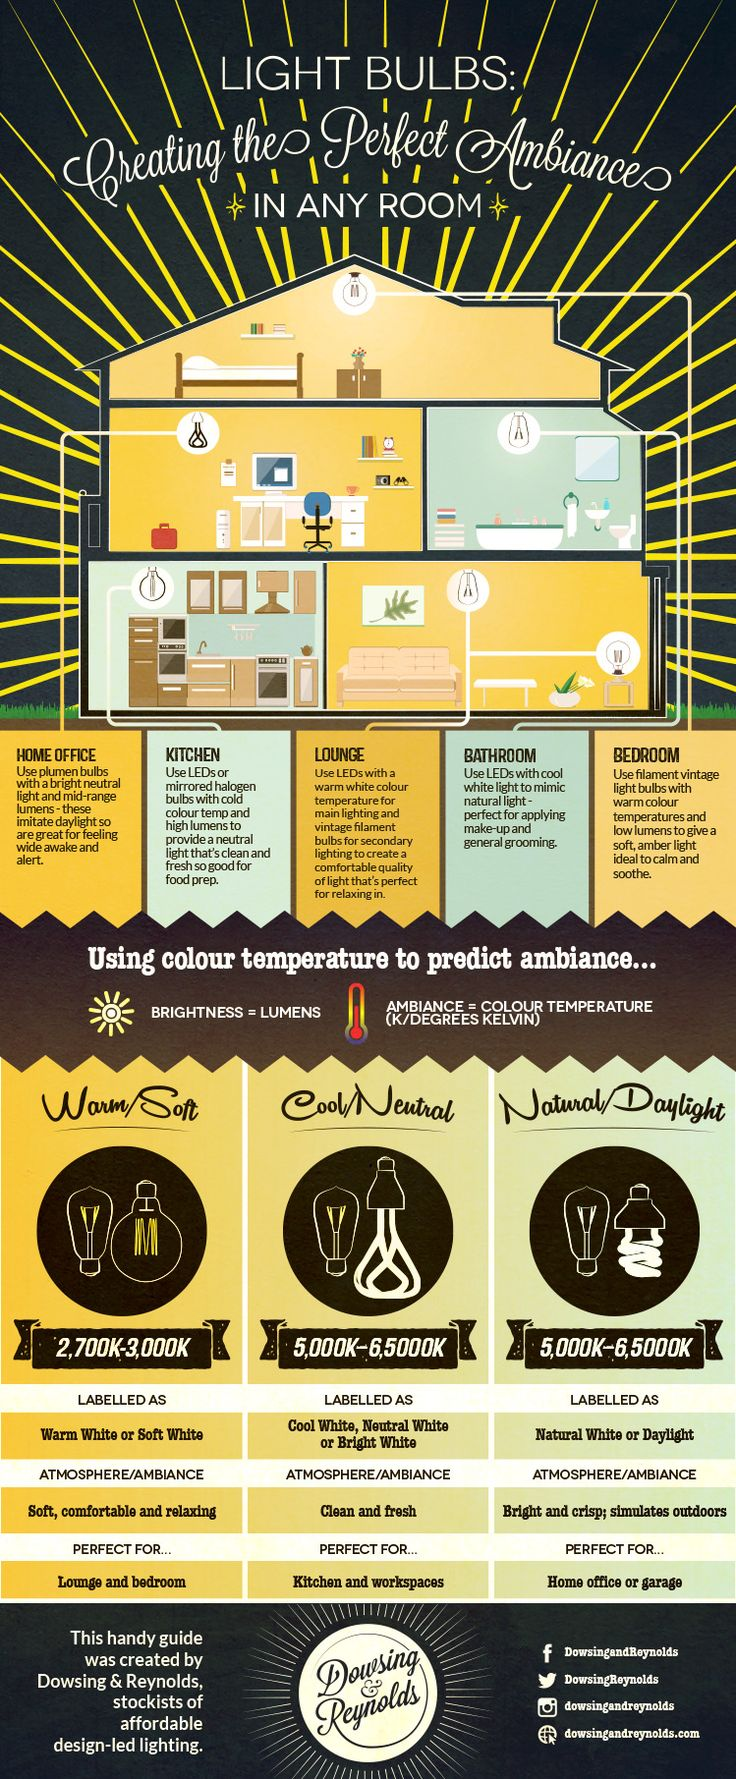 Light Bulbs: Creating the Perfect Ambiance in Any Room Infographic from Dowsing & Reynolds